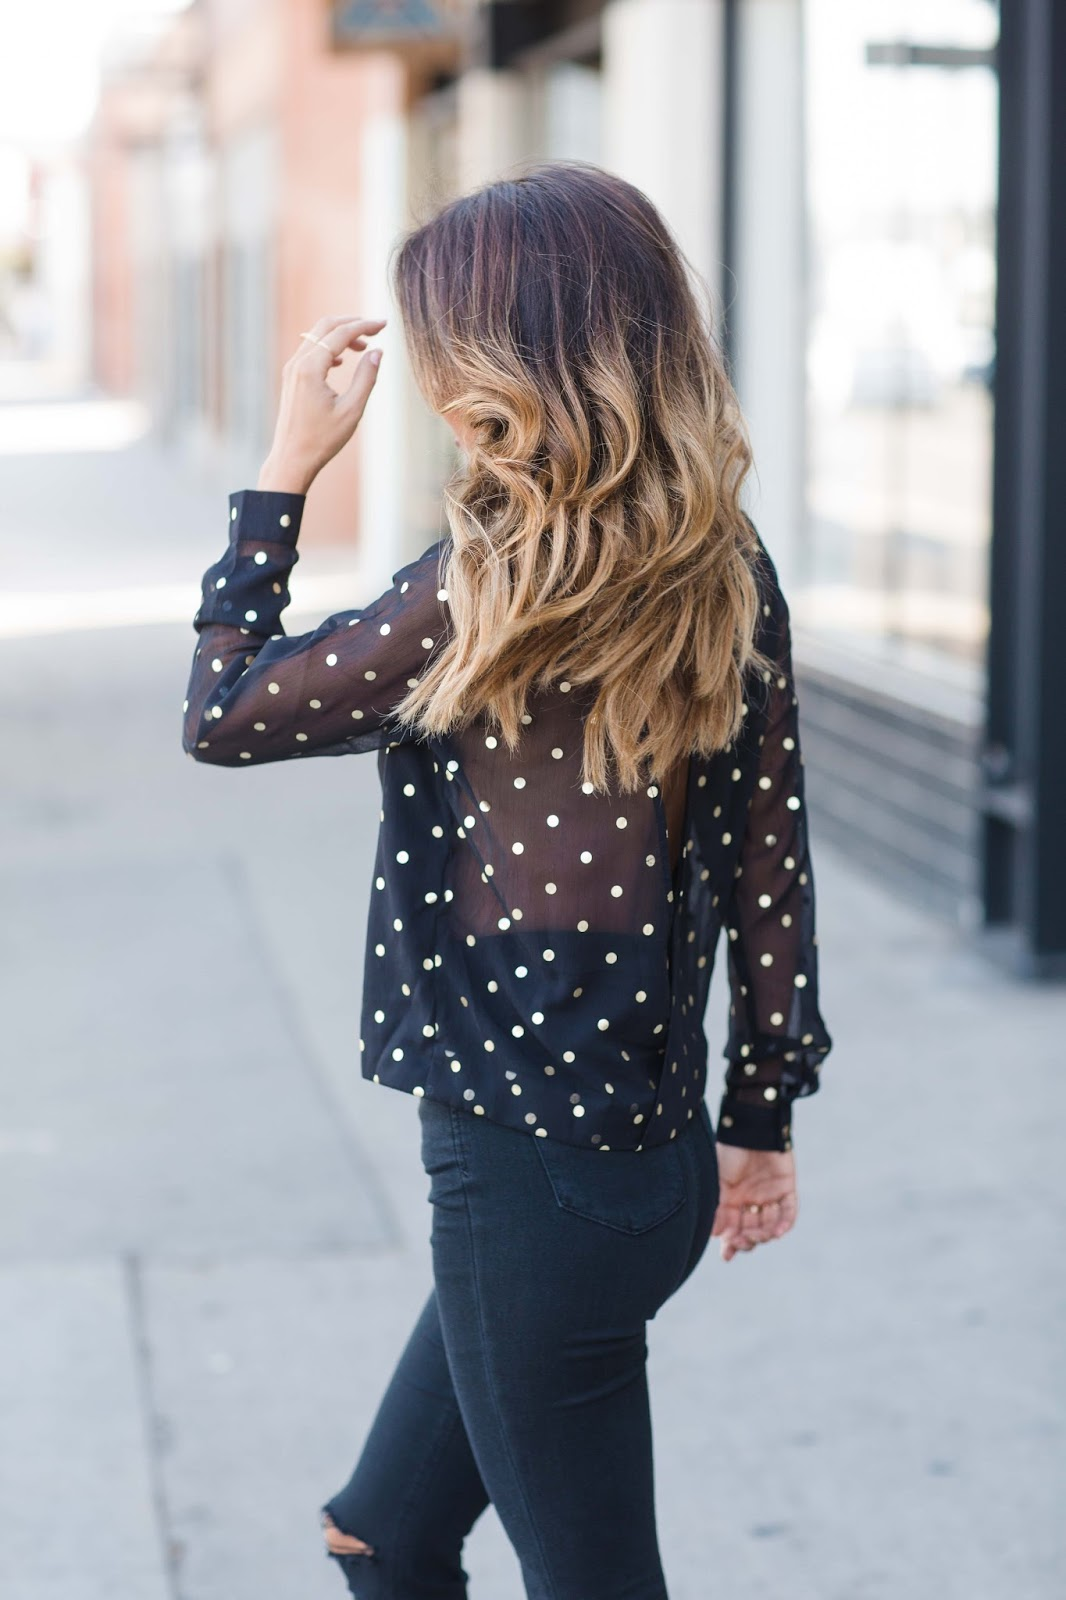 how to wear festive holiday top, holiday outfit ideas, gold polka dot top